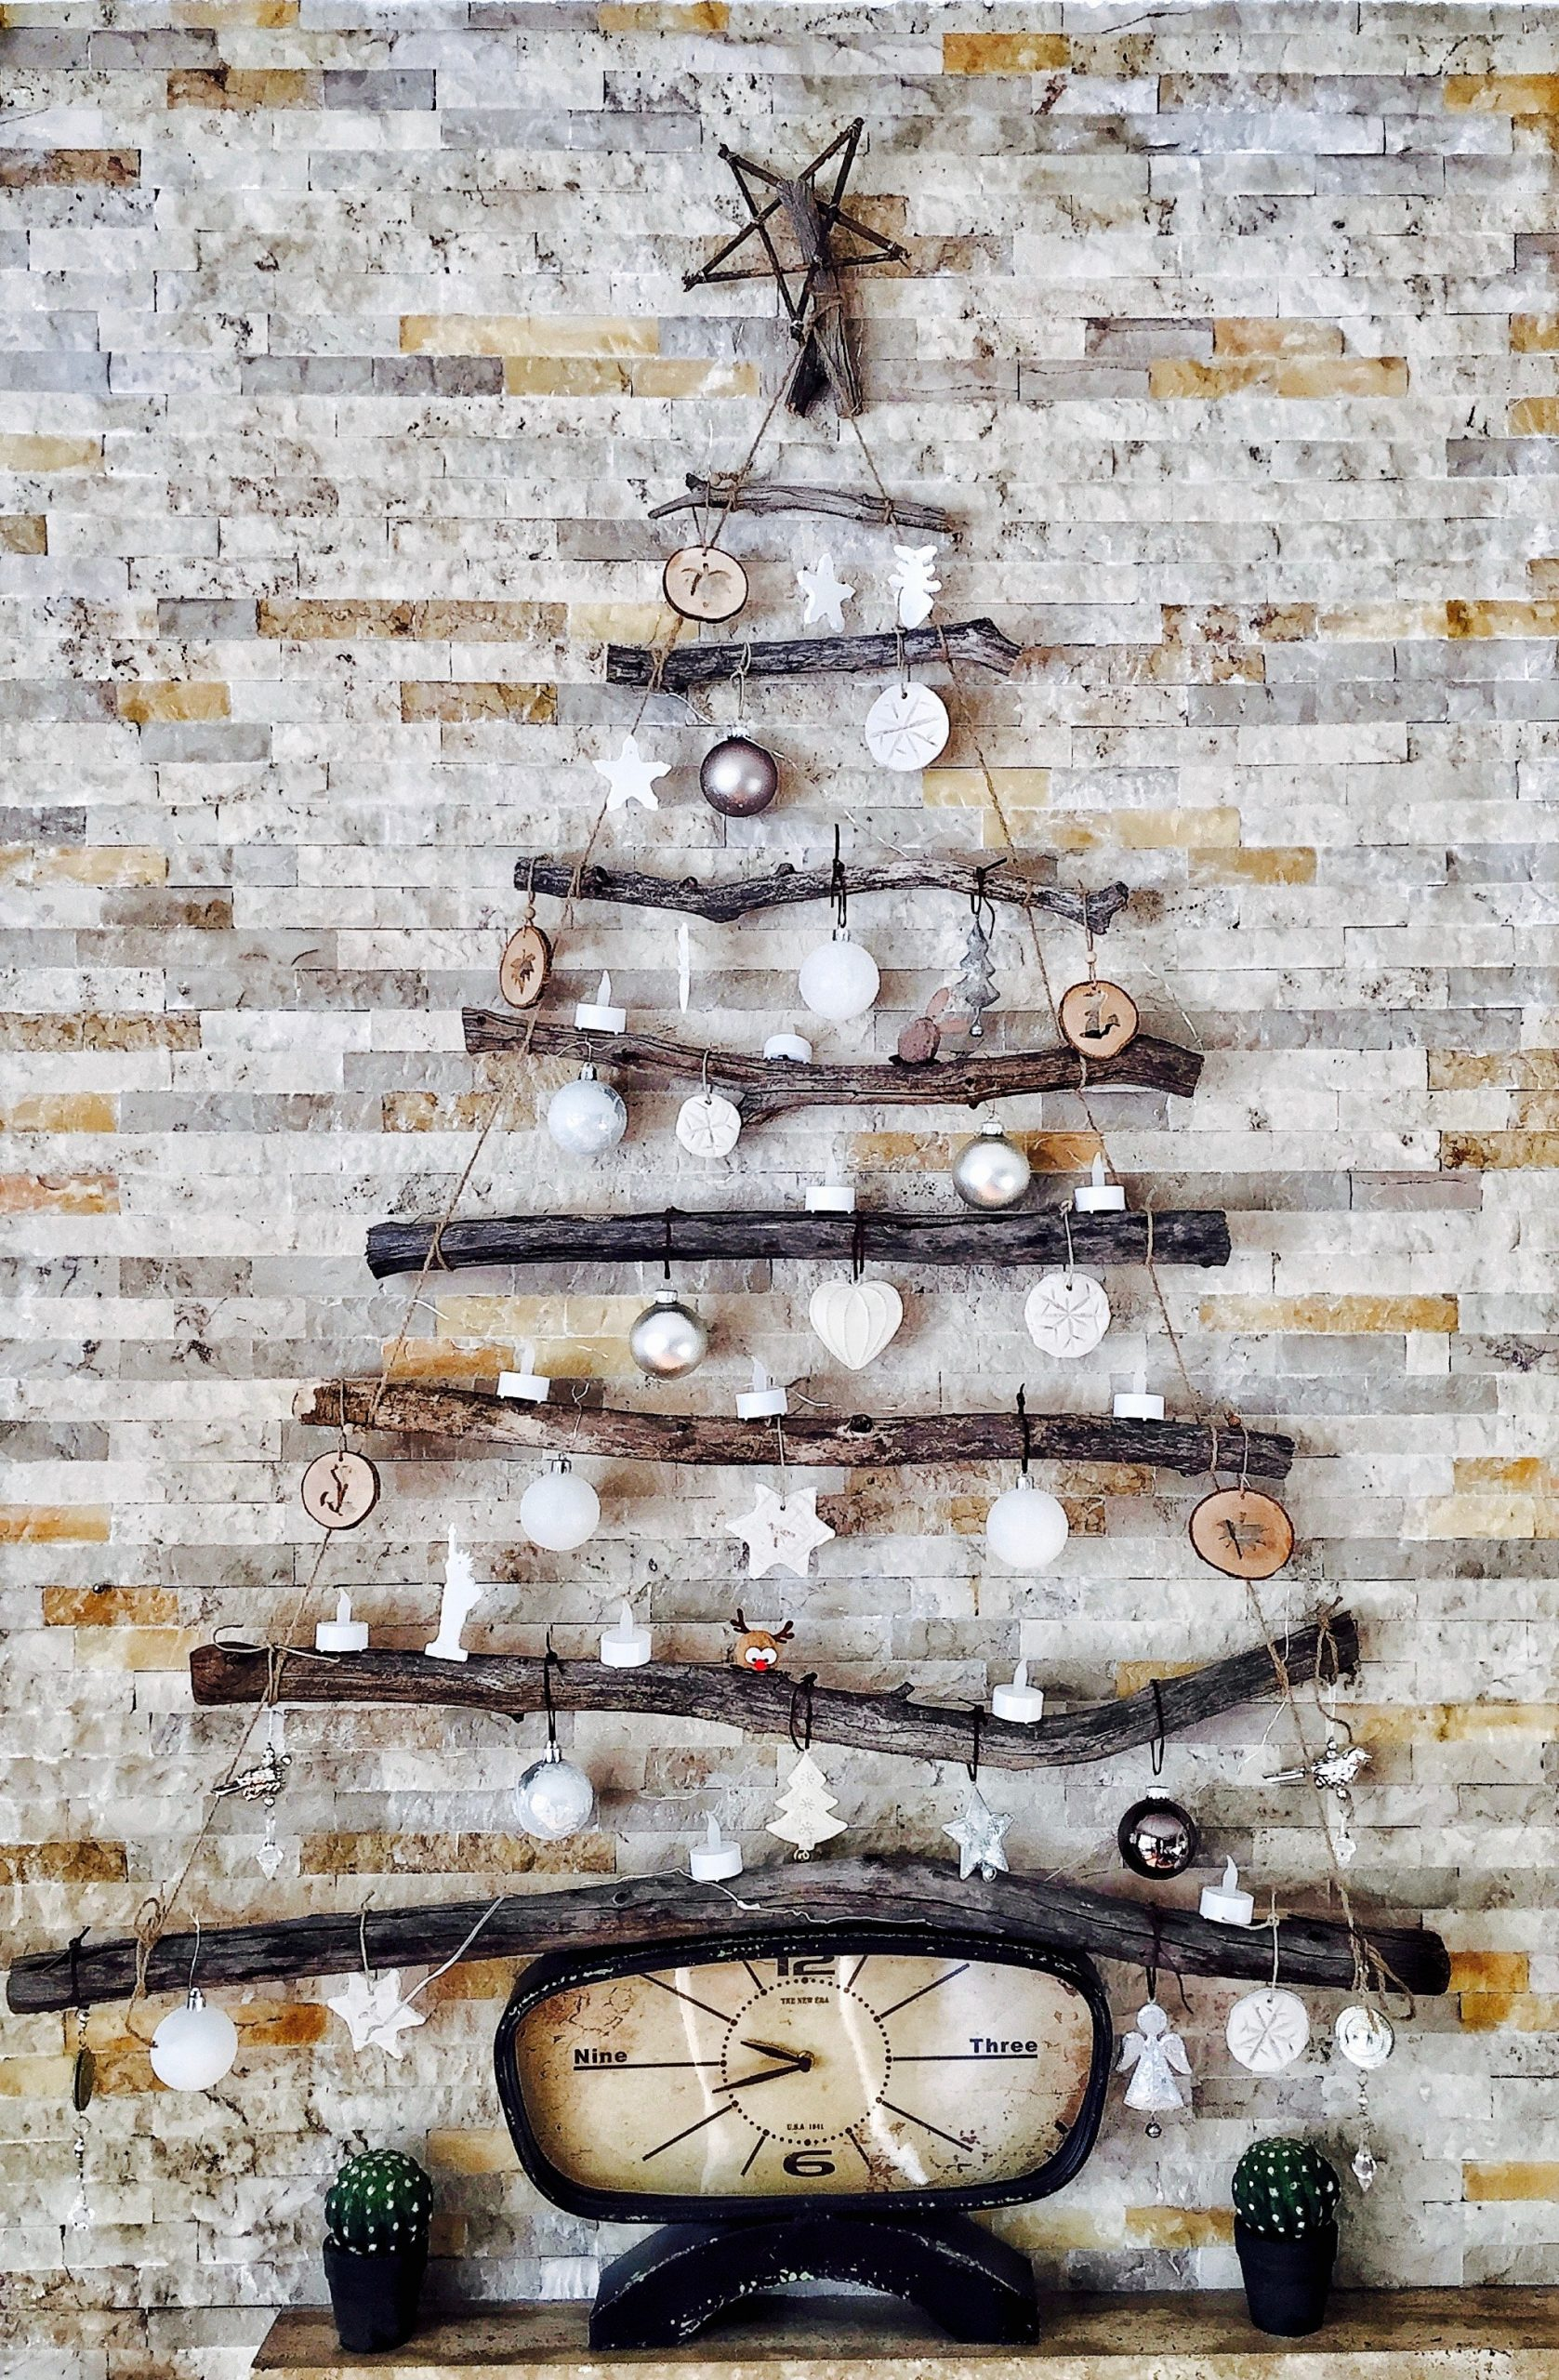 A Christmas wall décor using tree branches and decorative elements.